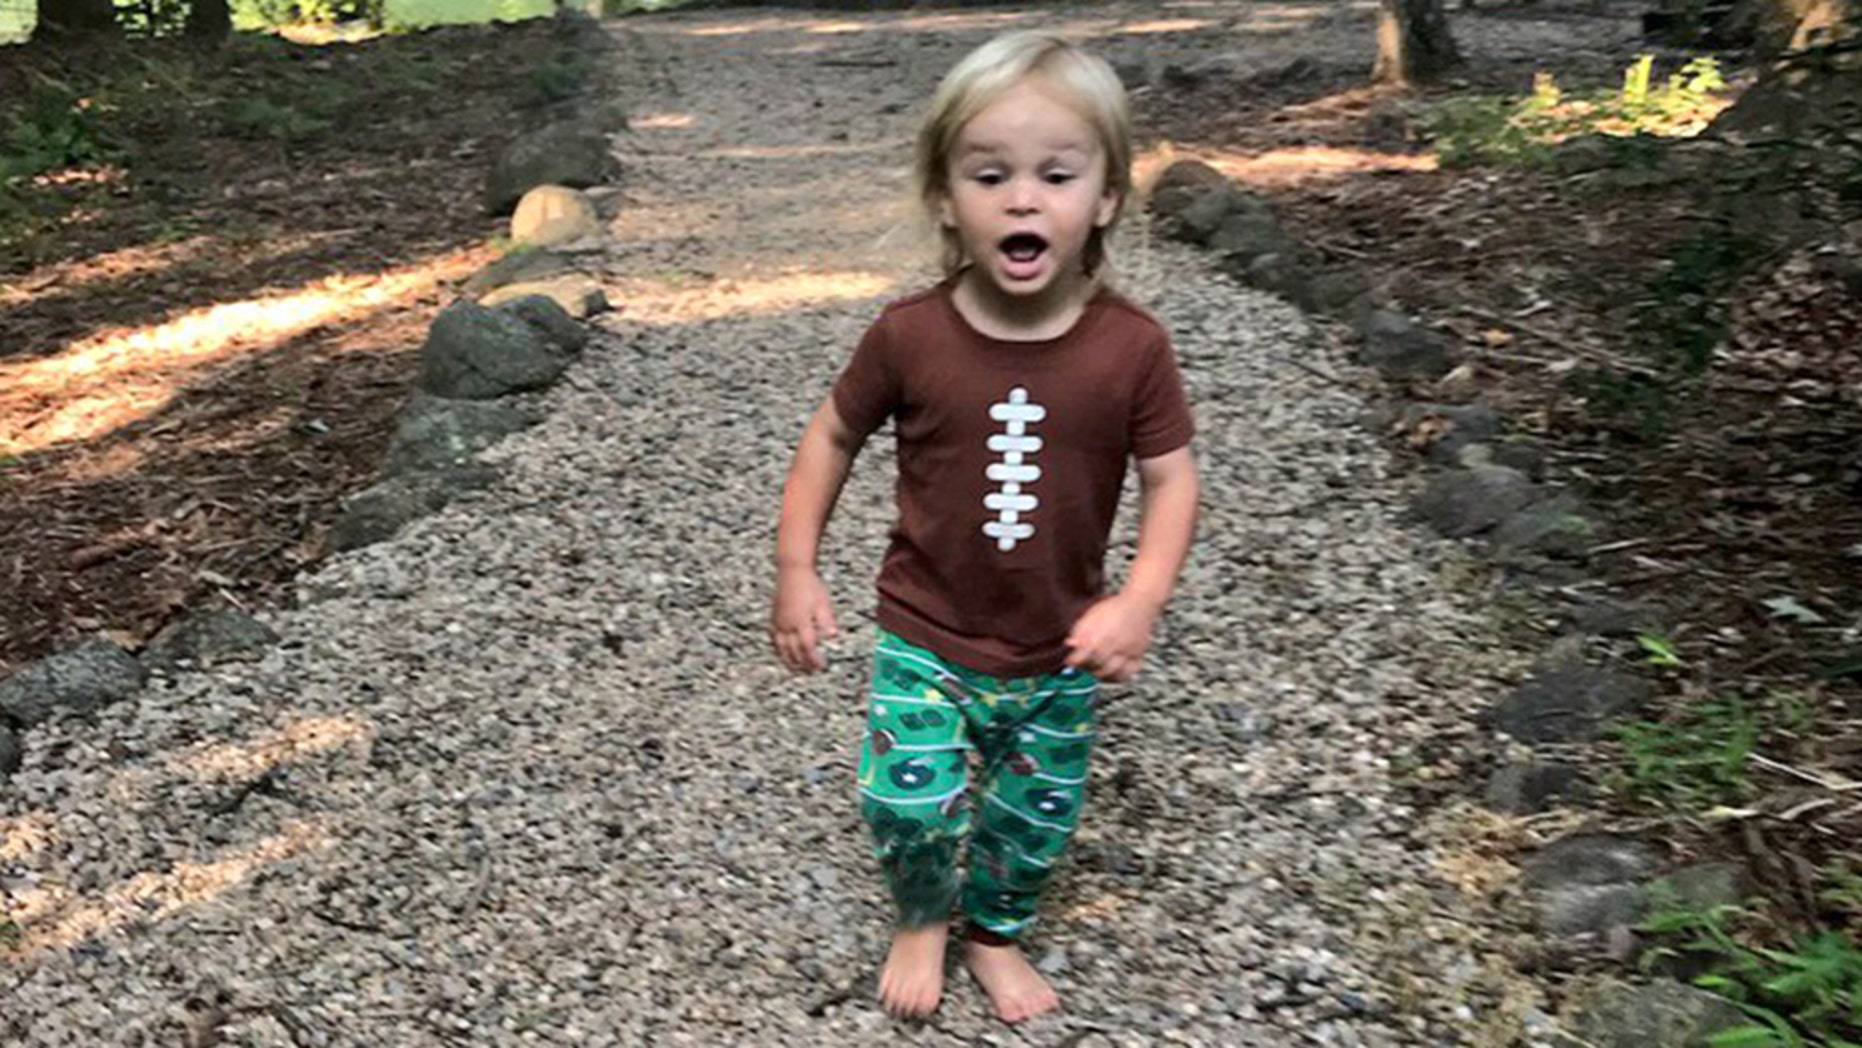 The body of two-year-old August Farley was found Thursday afternoon in a Virginia reservoir.